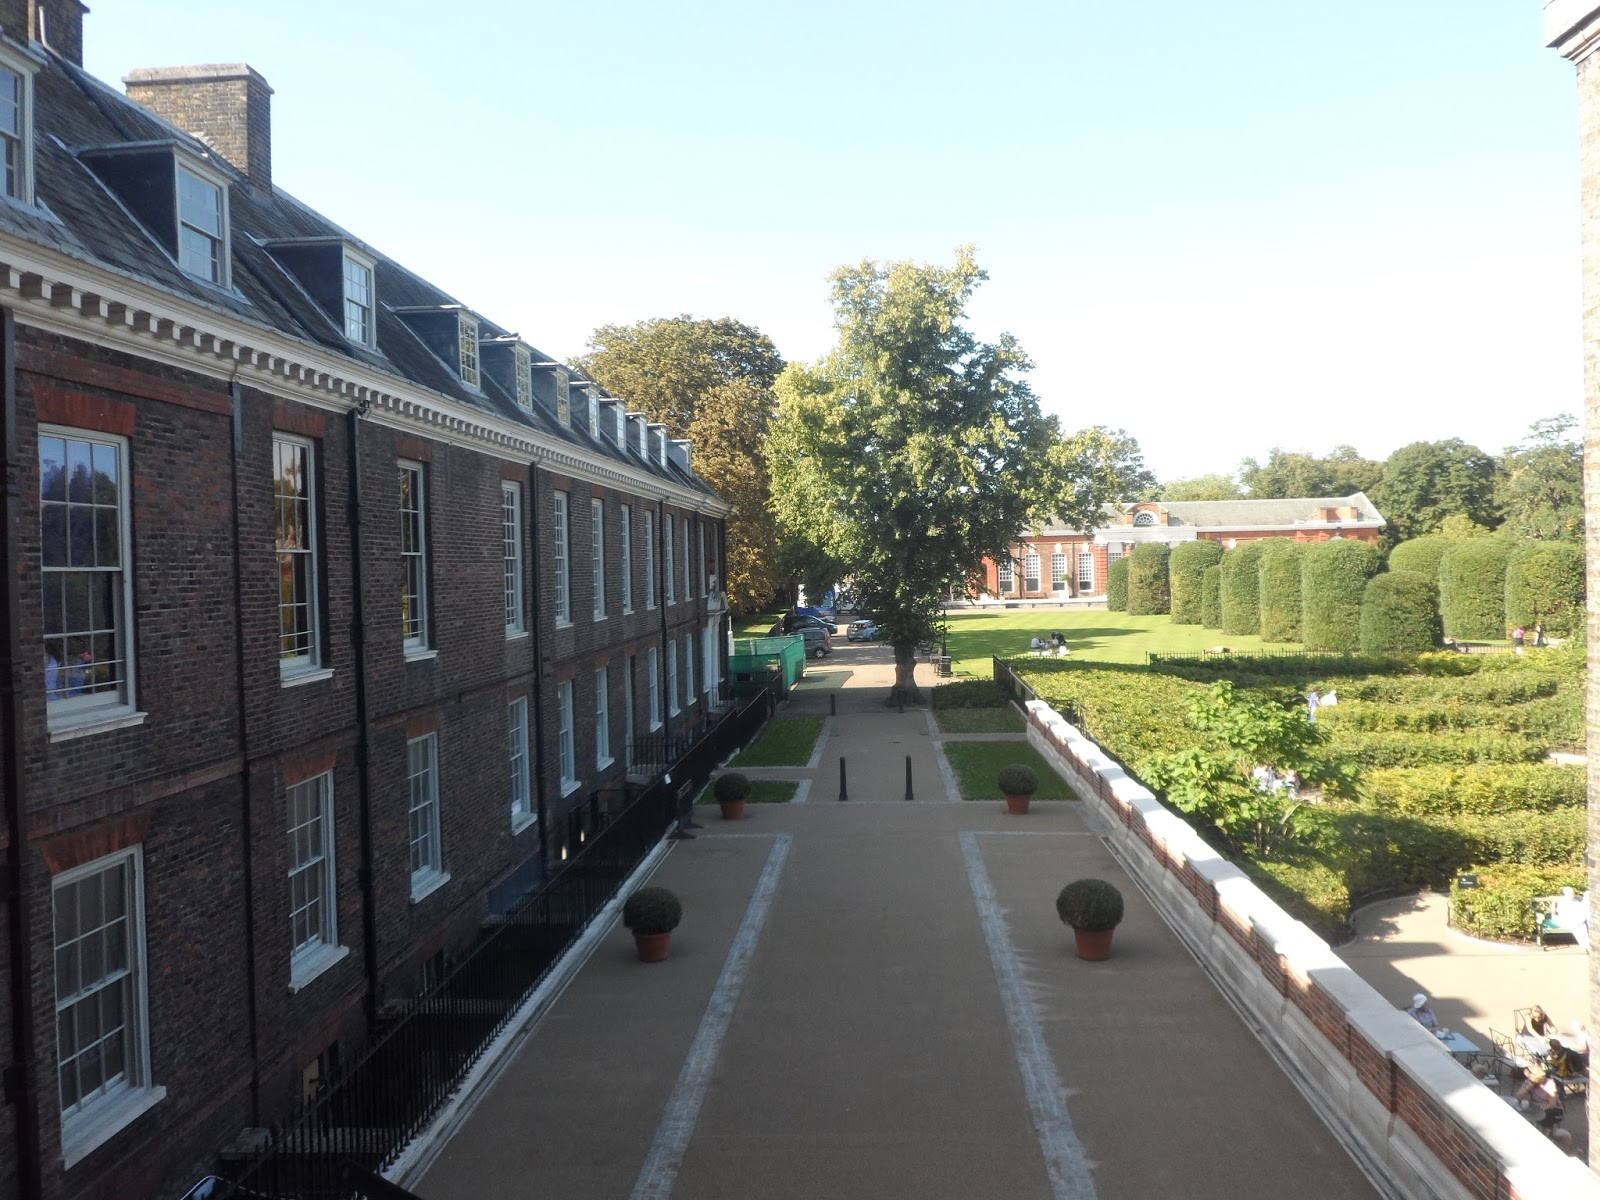 A Visit To Kensington Palace And The Fashion Rules